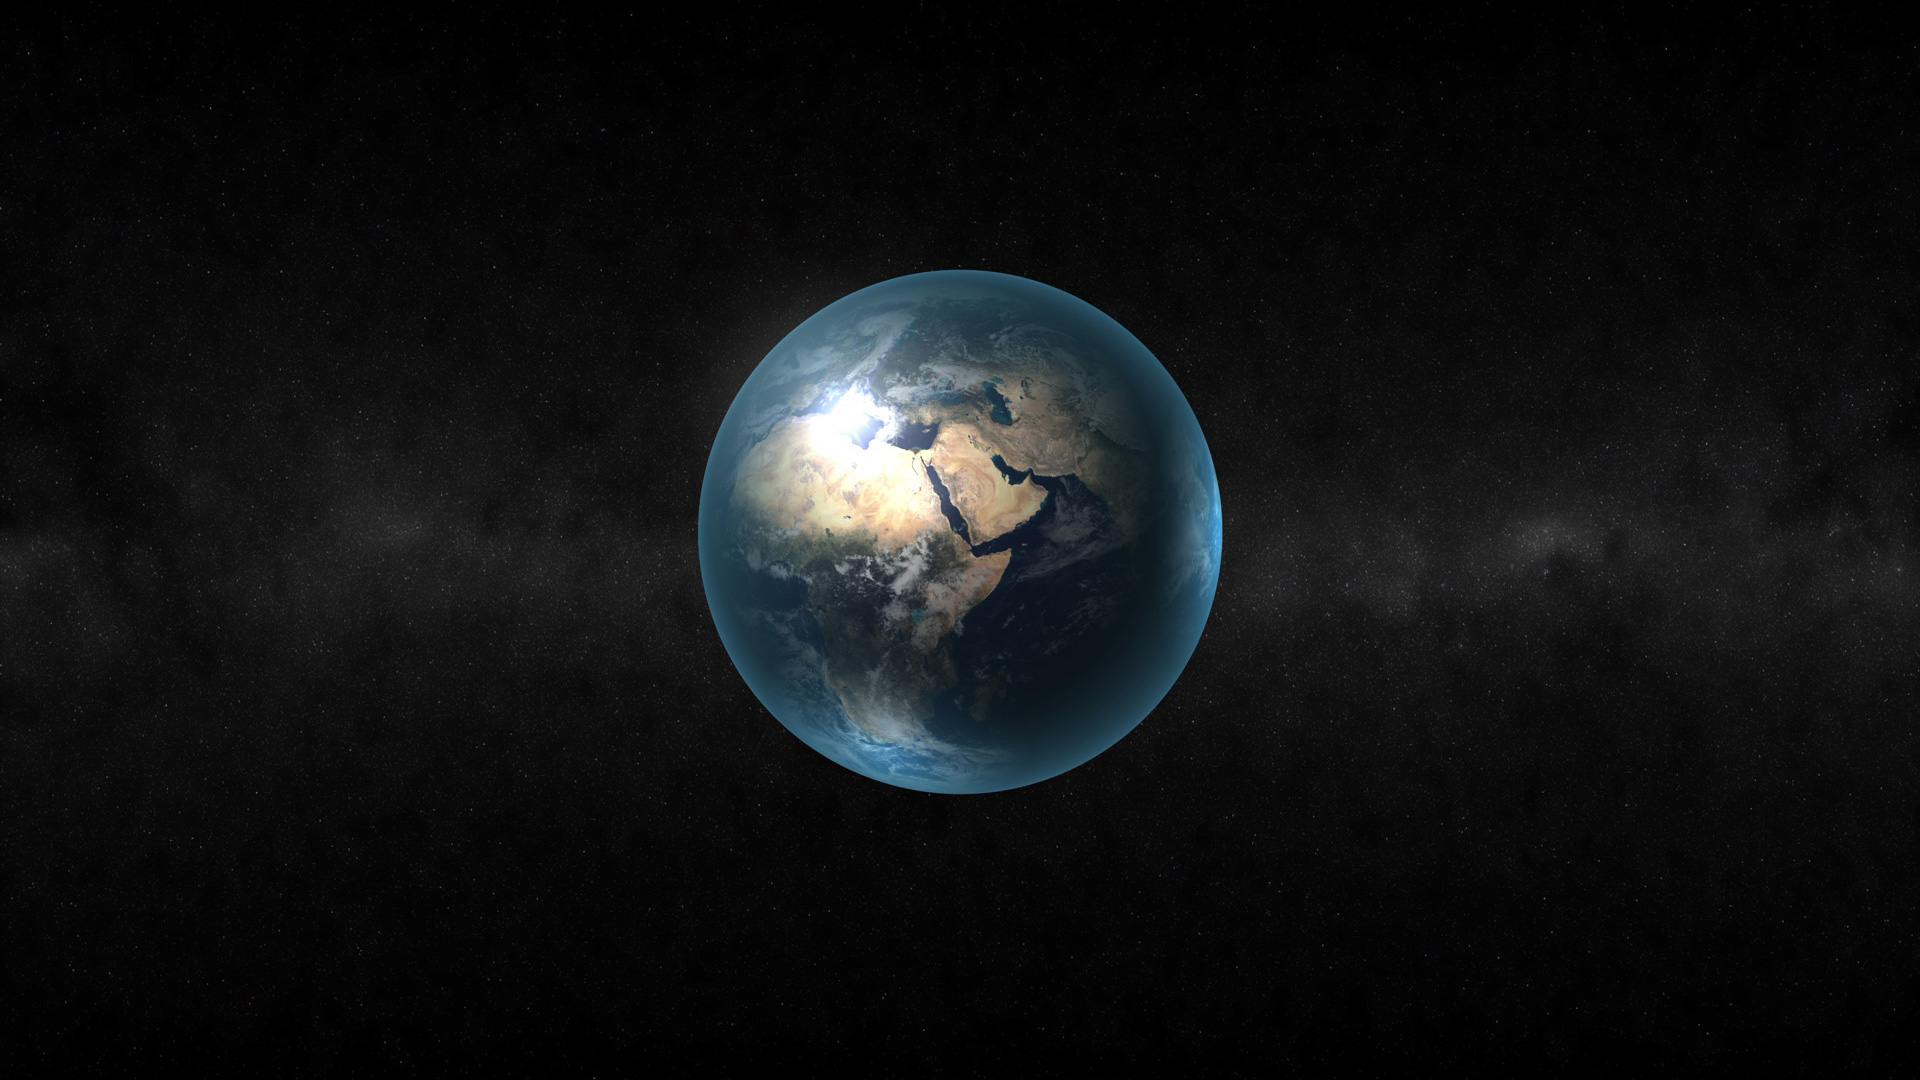 HD Planet Earth Wallpapers   HD Wallpapers